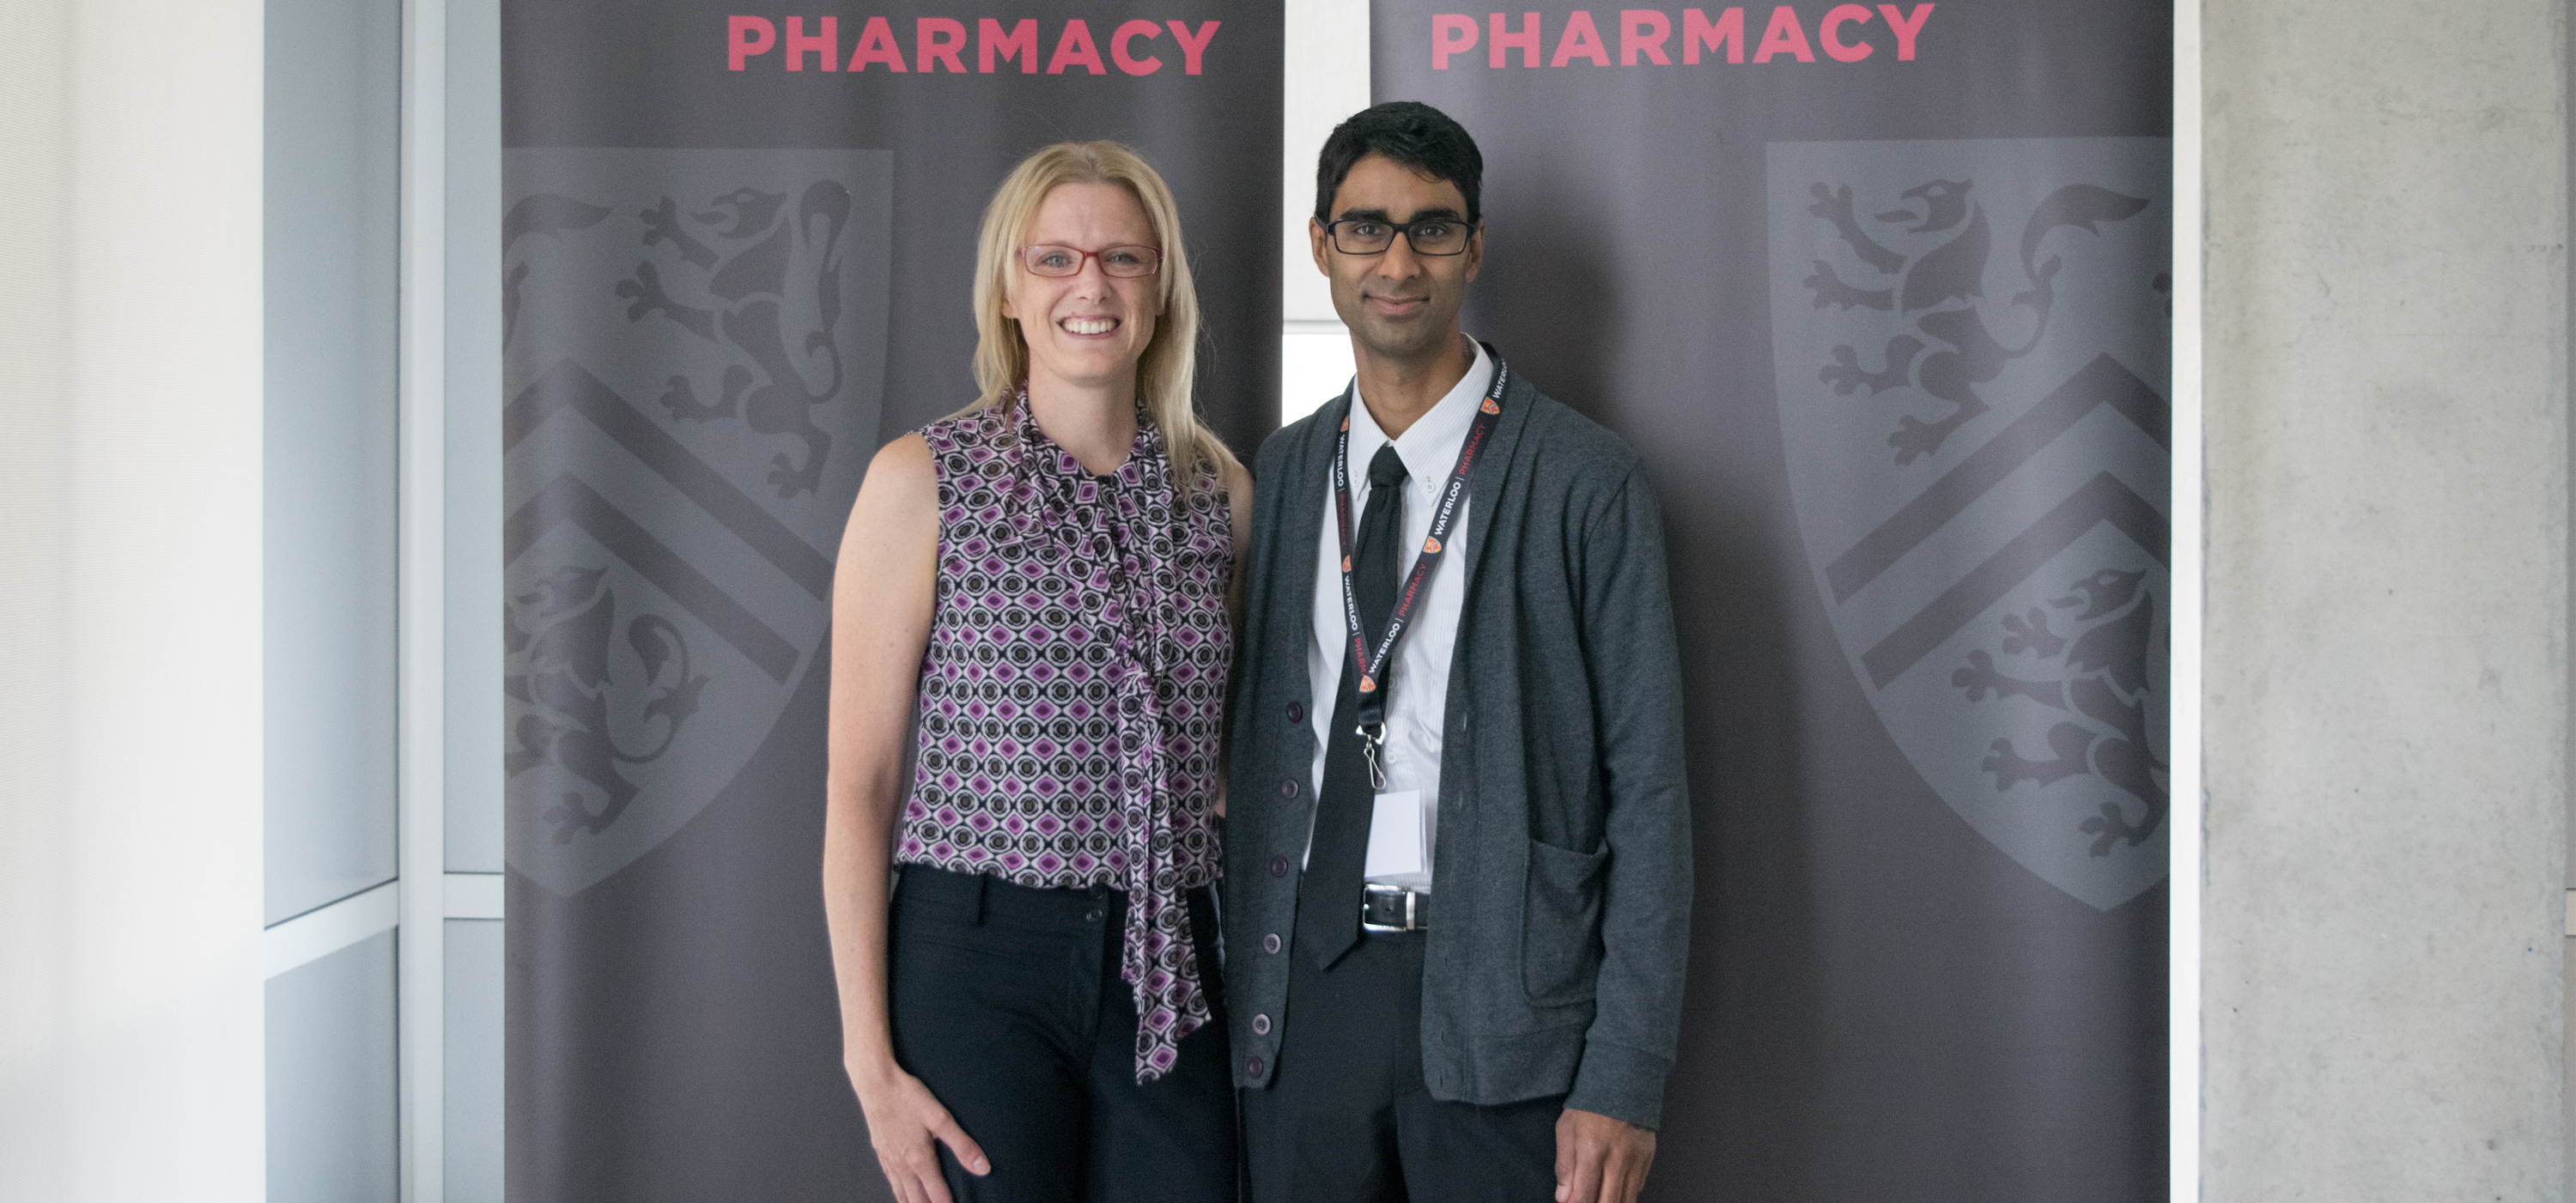 Andrea Edginton and Anil Maharaj